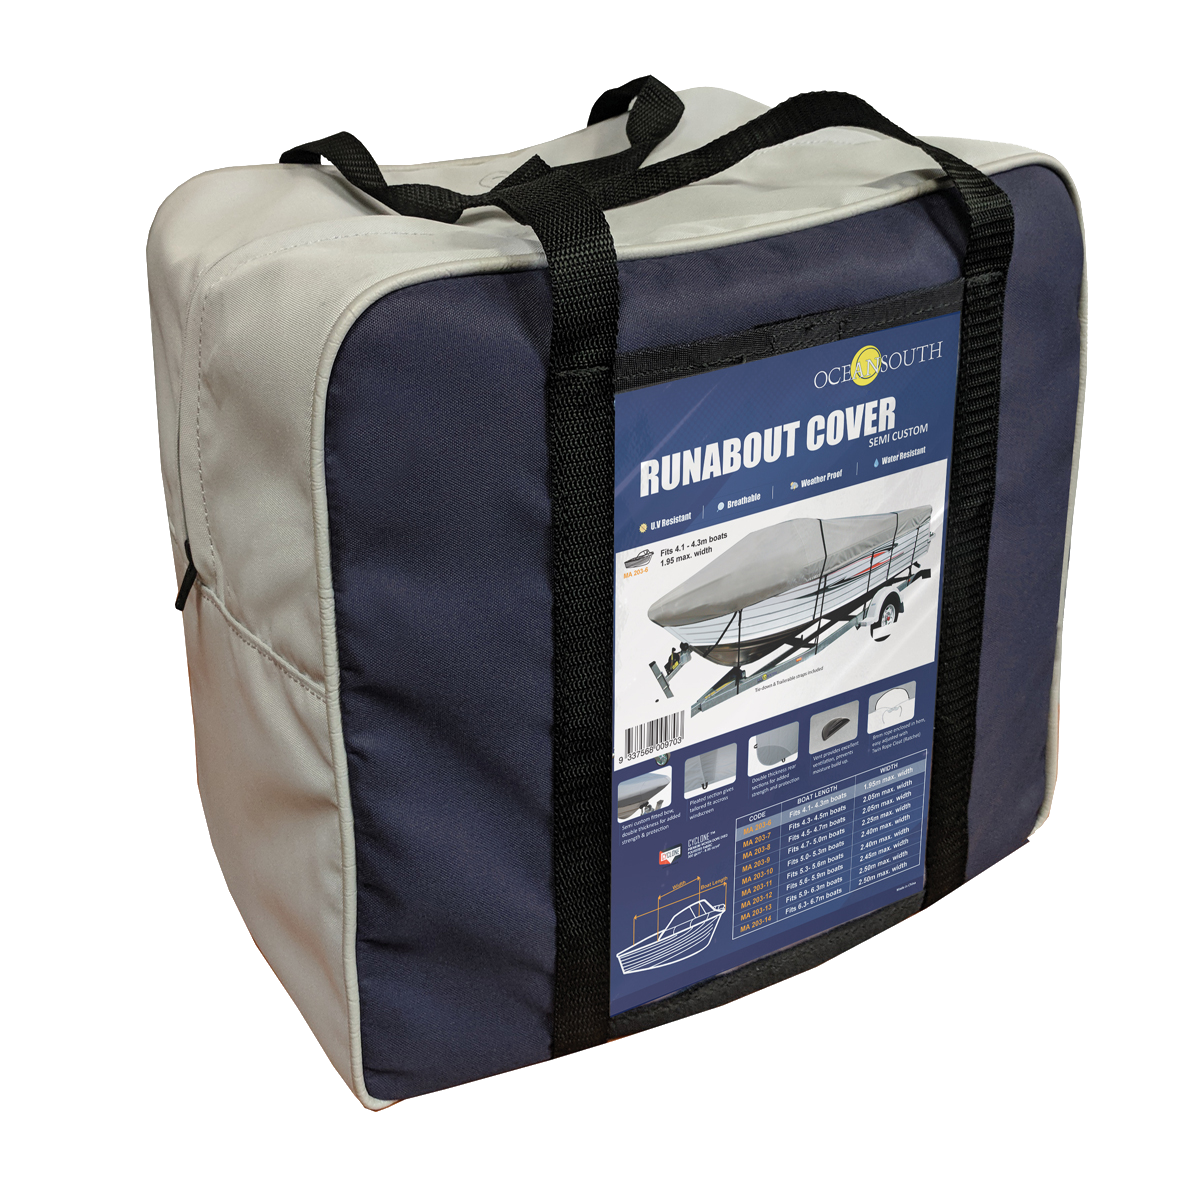 Runabout Cover Bag Box